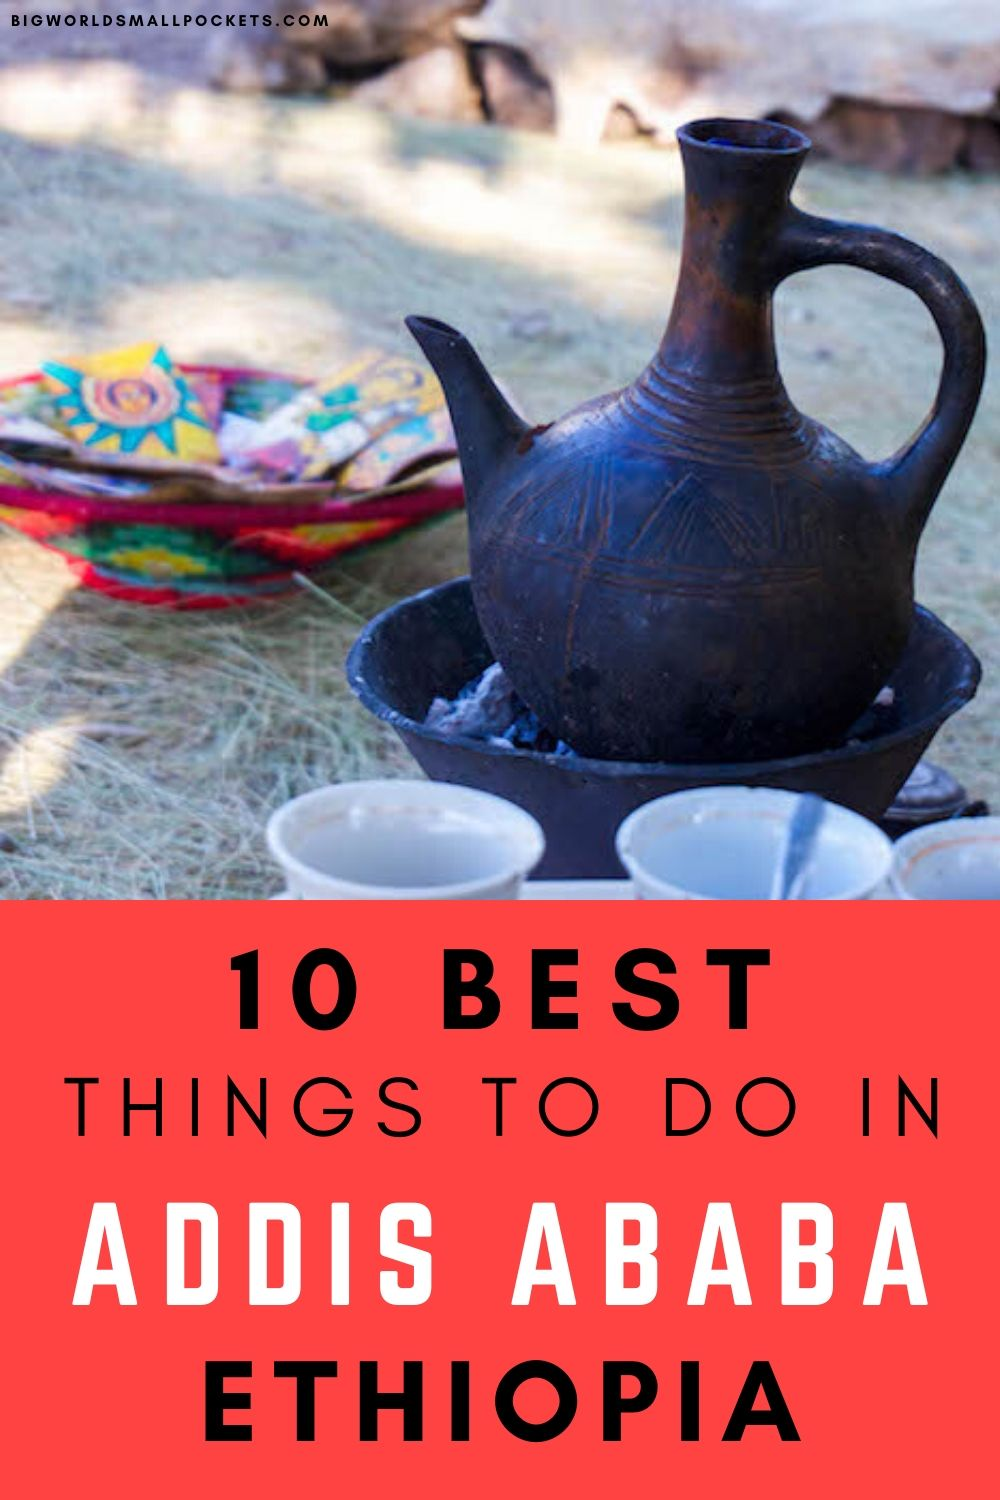 Top 10 Things to do in Addis Ababa, Ethiopia